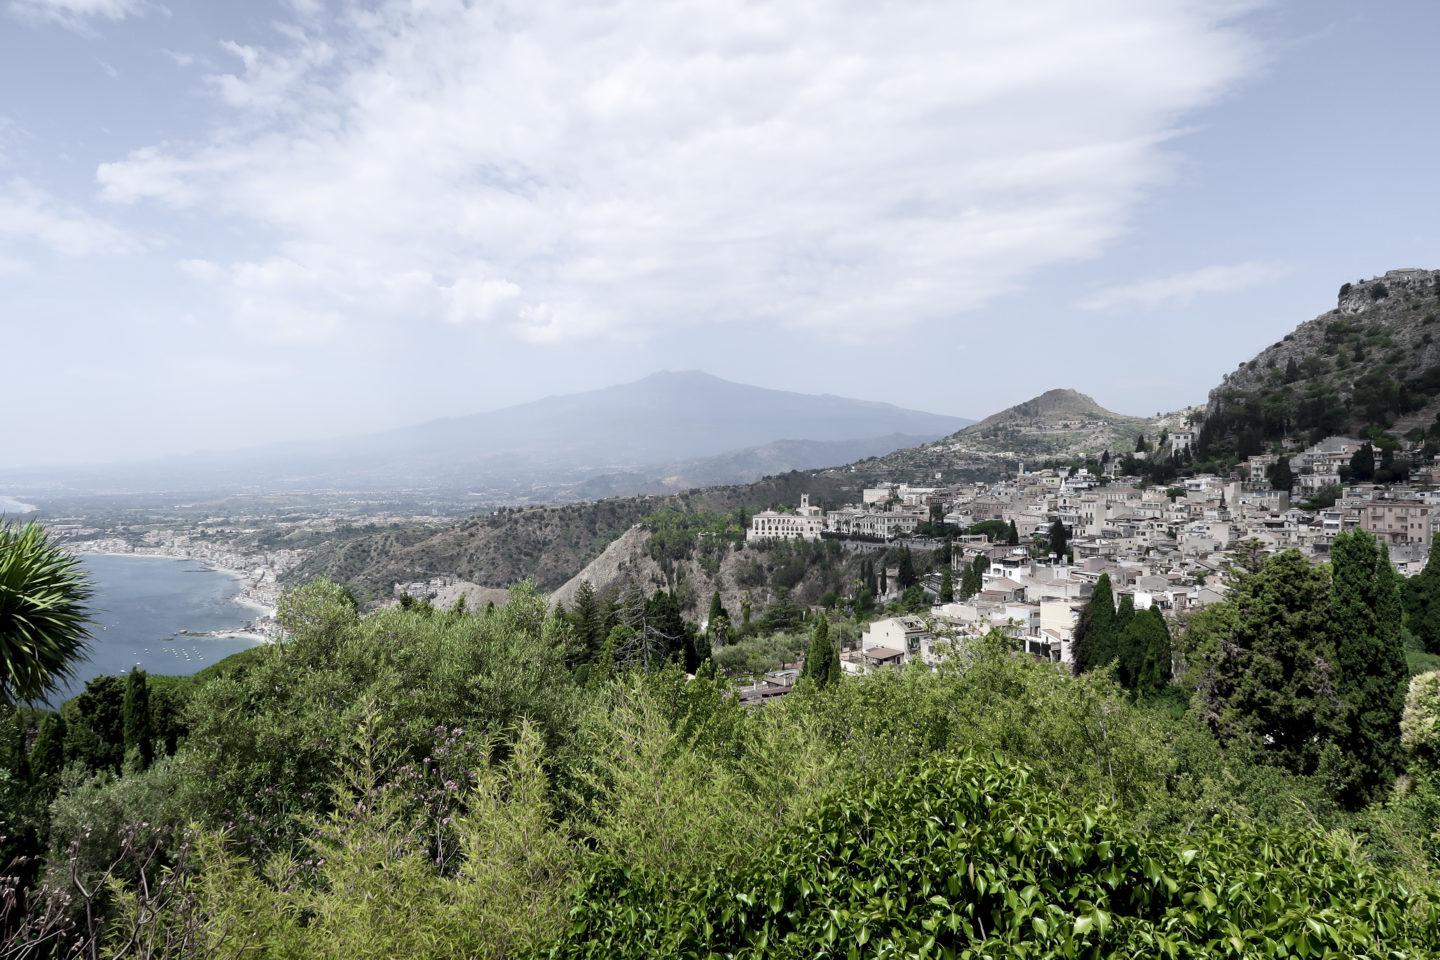 A POSTCARD FROM SICILY